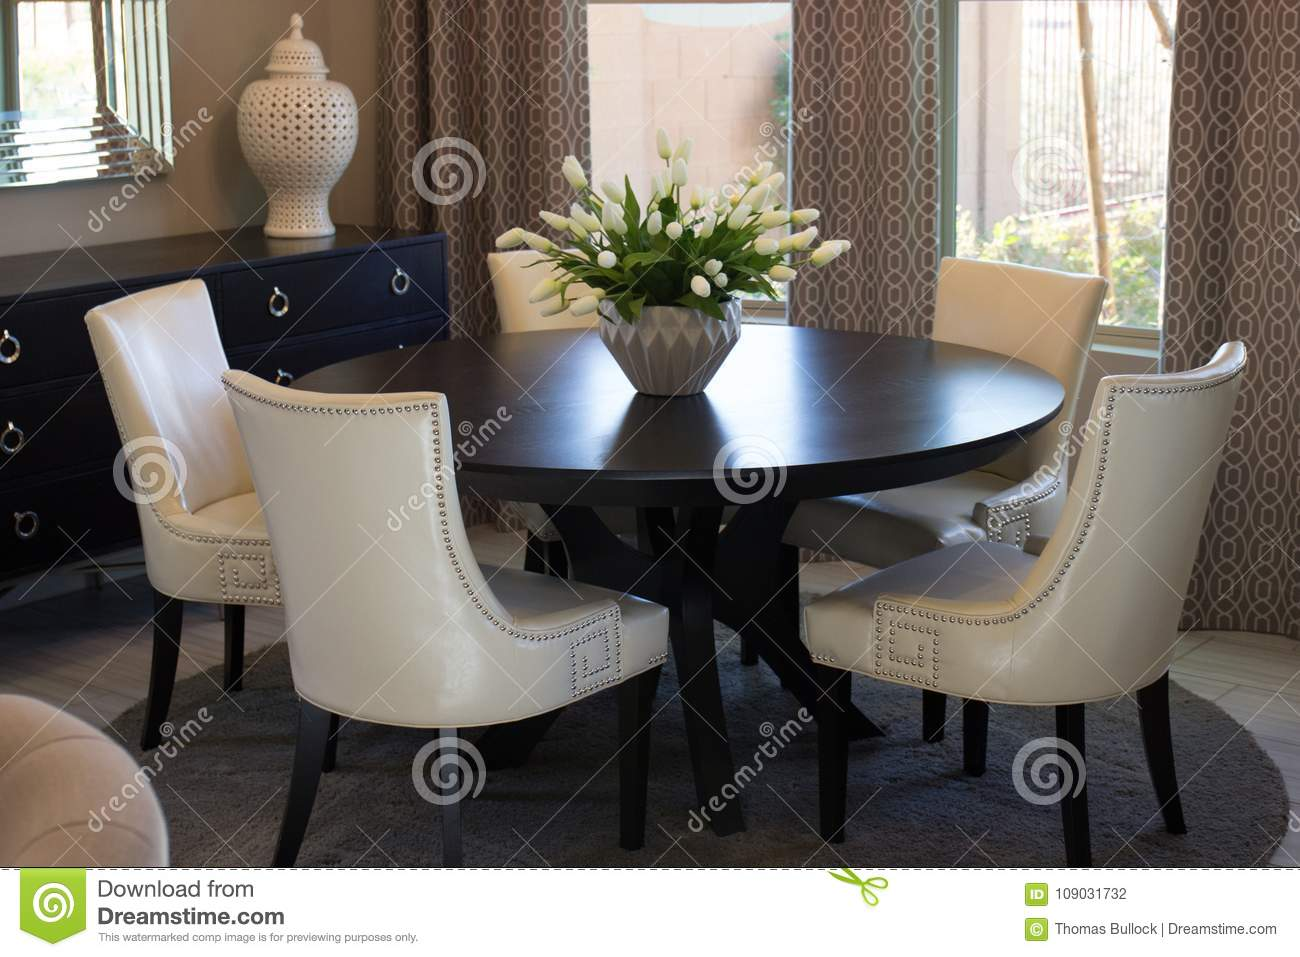 Dining Room Round Table Chairs Stock Photo Image Of Room Legs 109031732